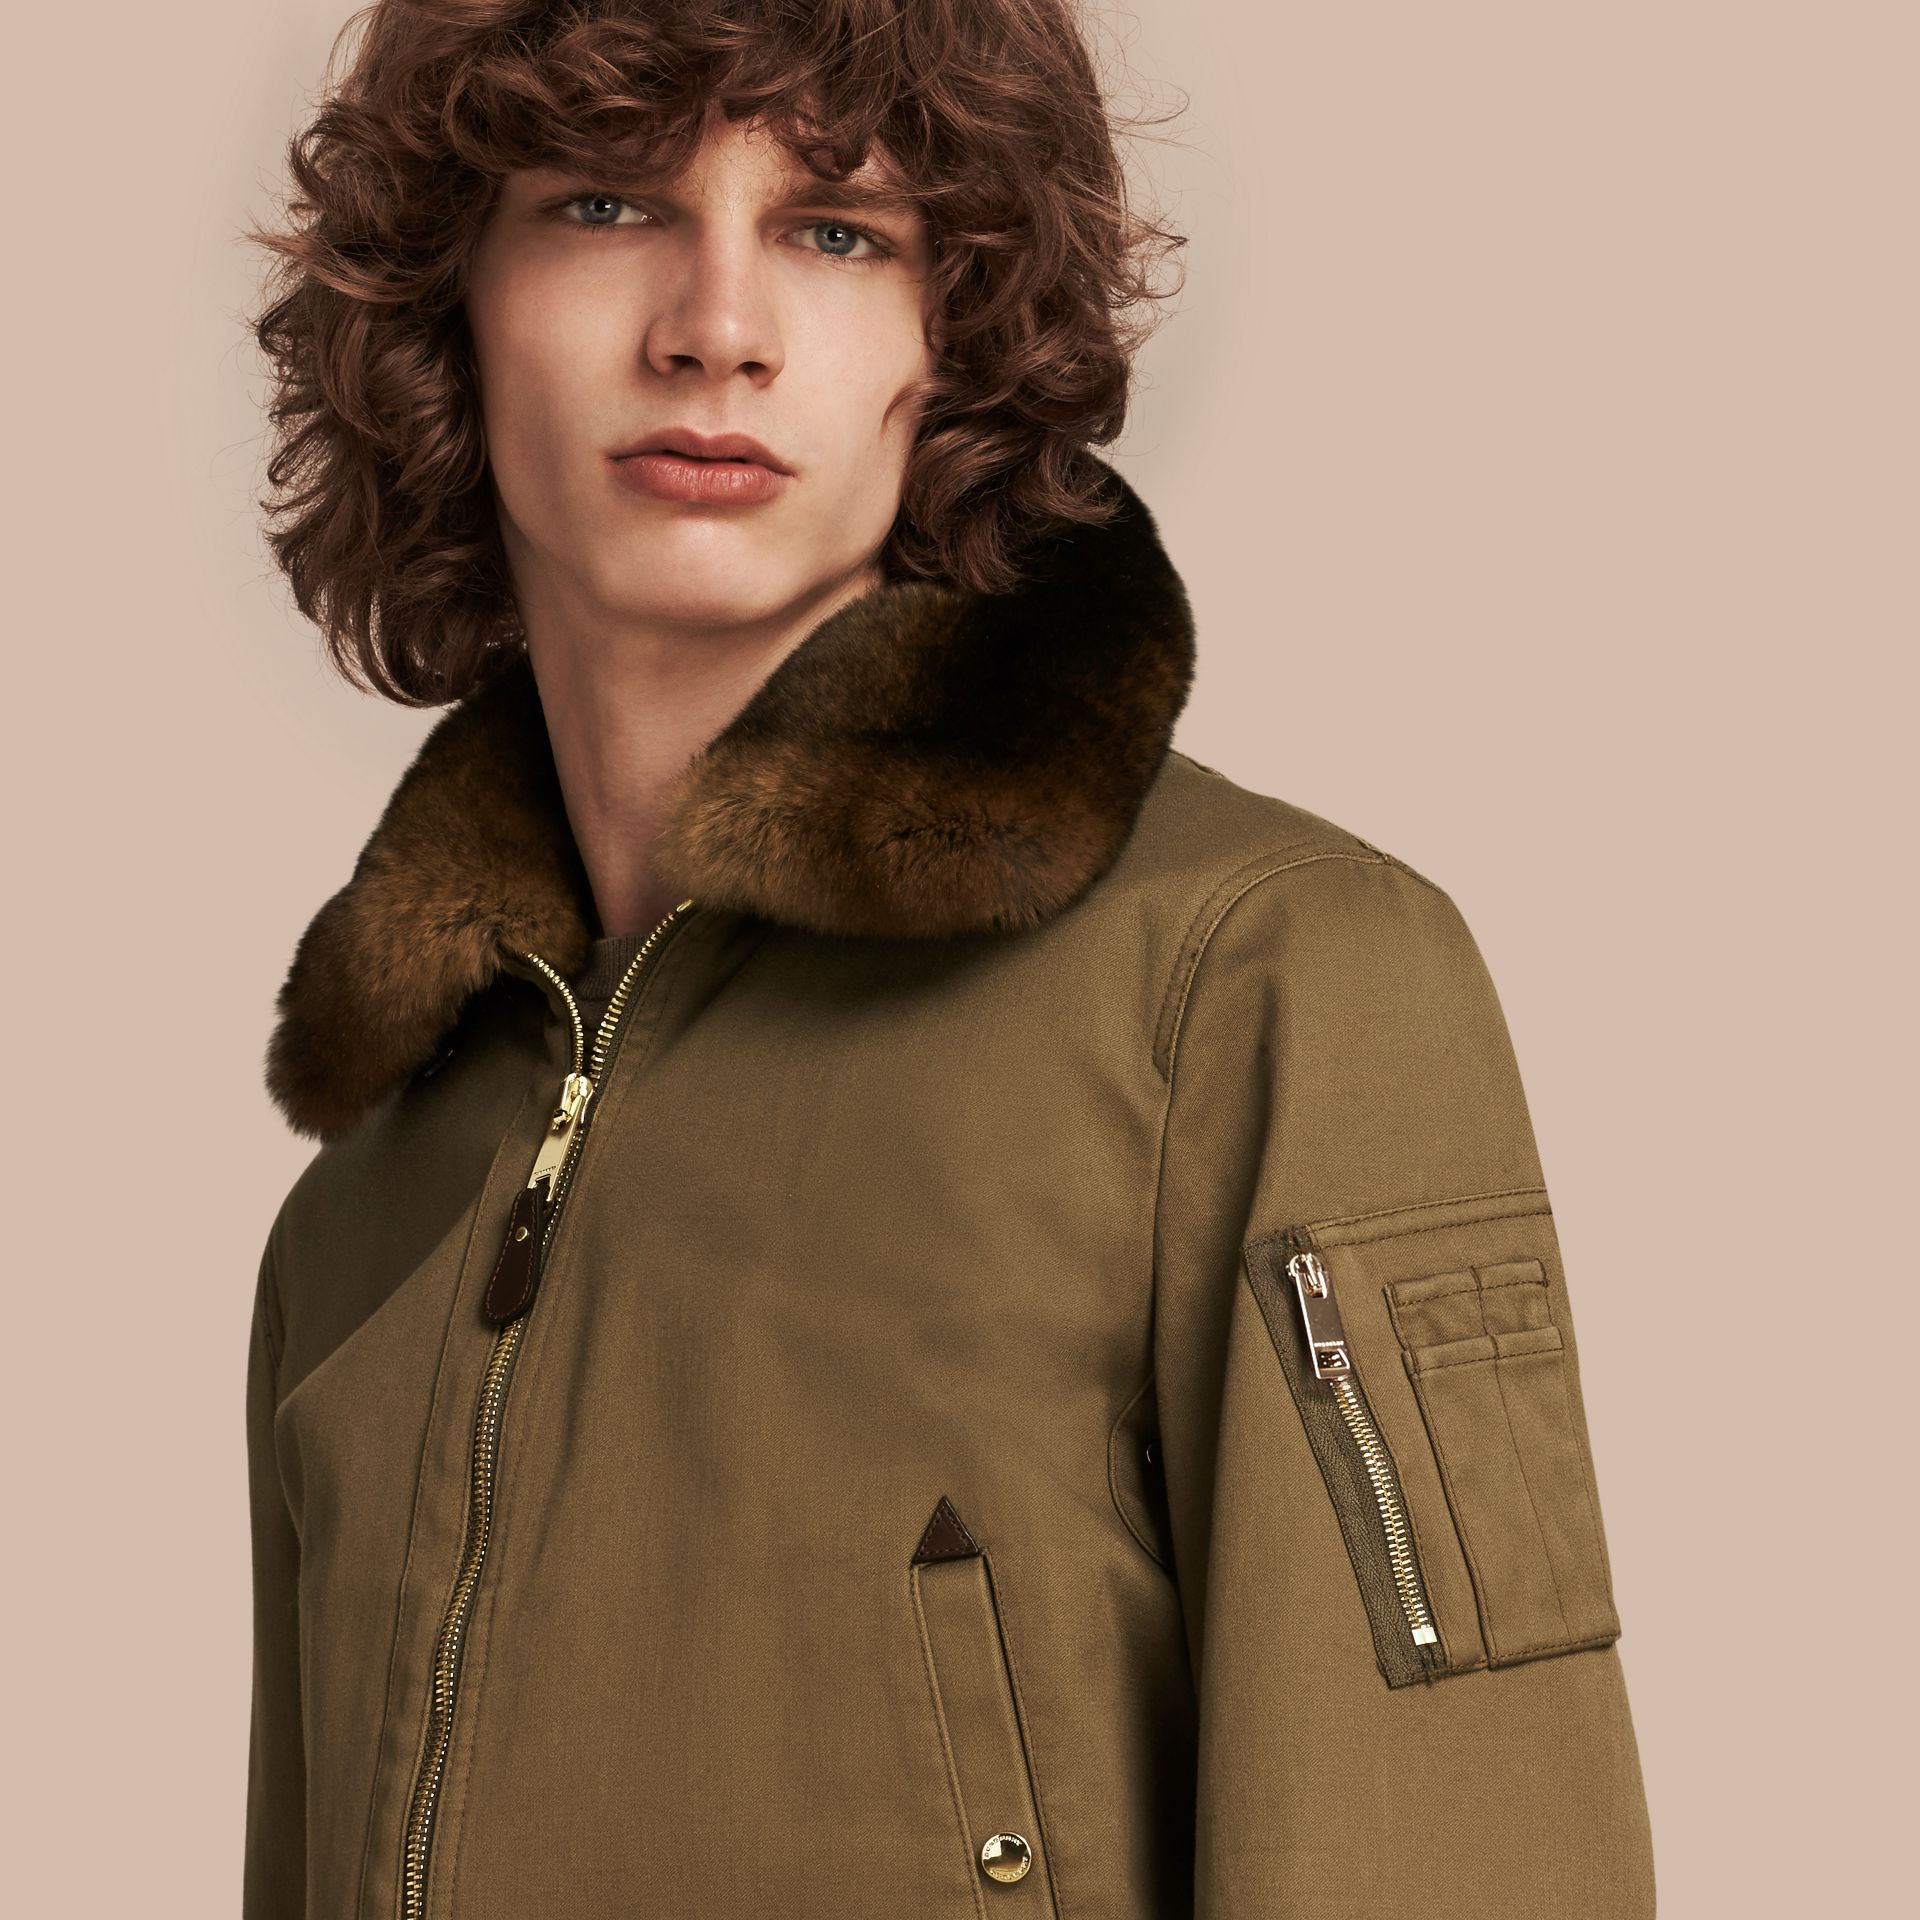 Olive green Cotton Bomber Jacket with Detachable Fur-lined Warmer - gallery image 6